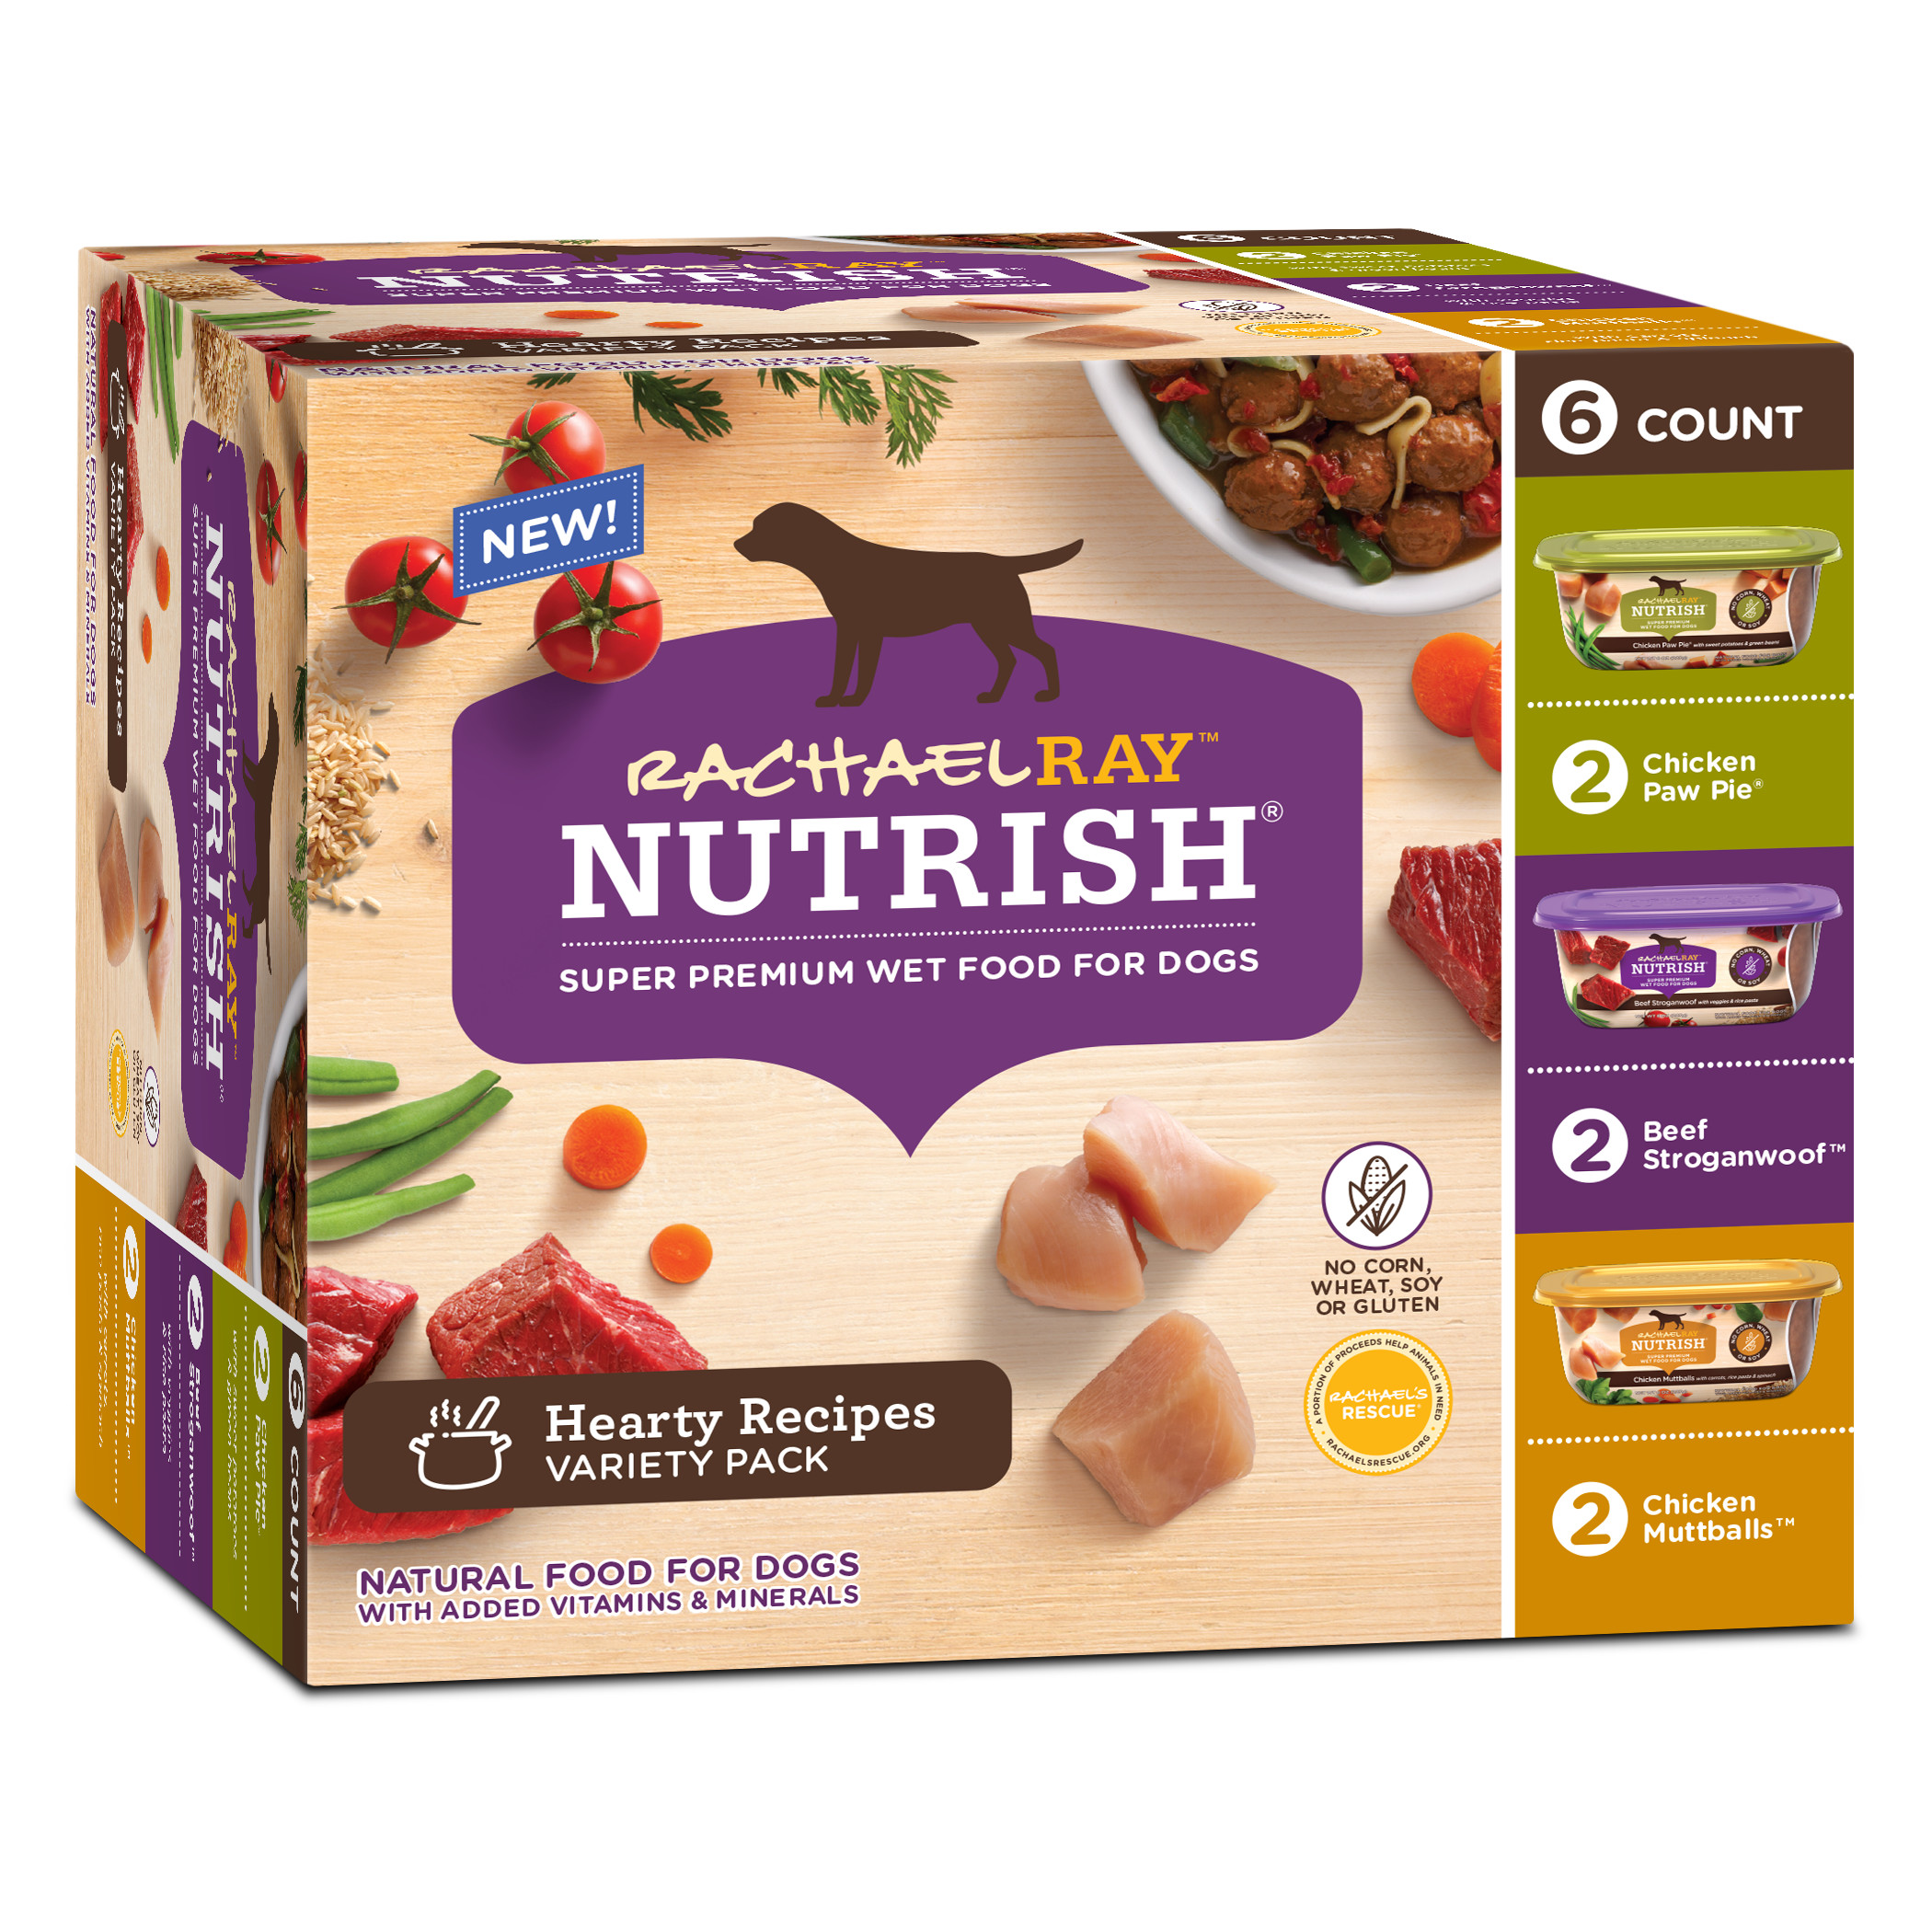 Rachael Ray Nutrish Natural Wet Dog Food, Hearty Recipes Variety Pack, 8 oz tubs, Pack of 6